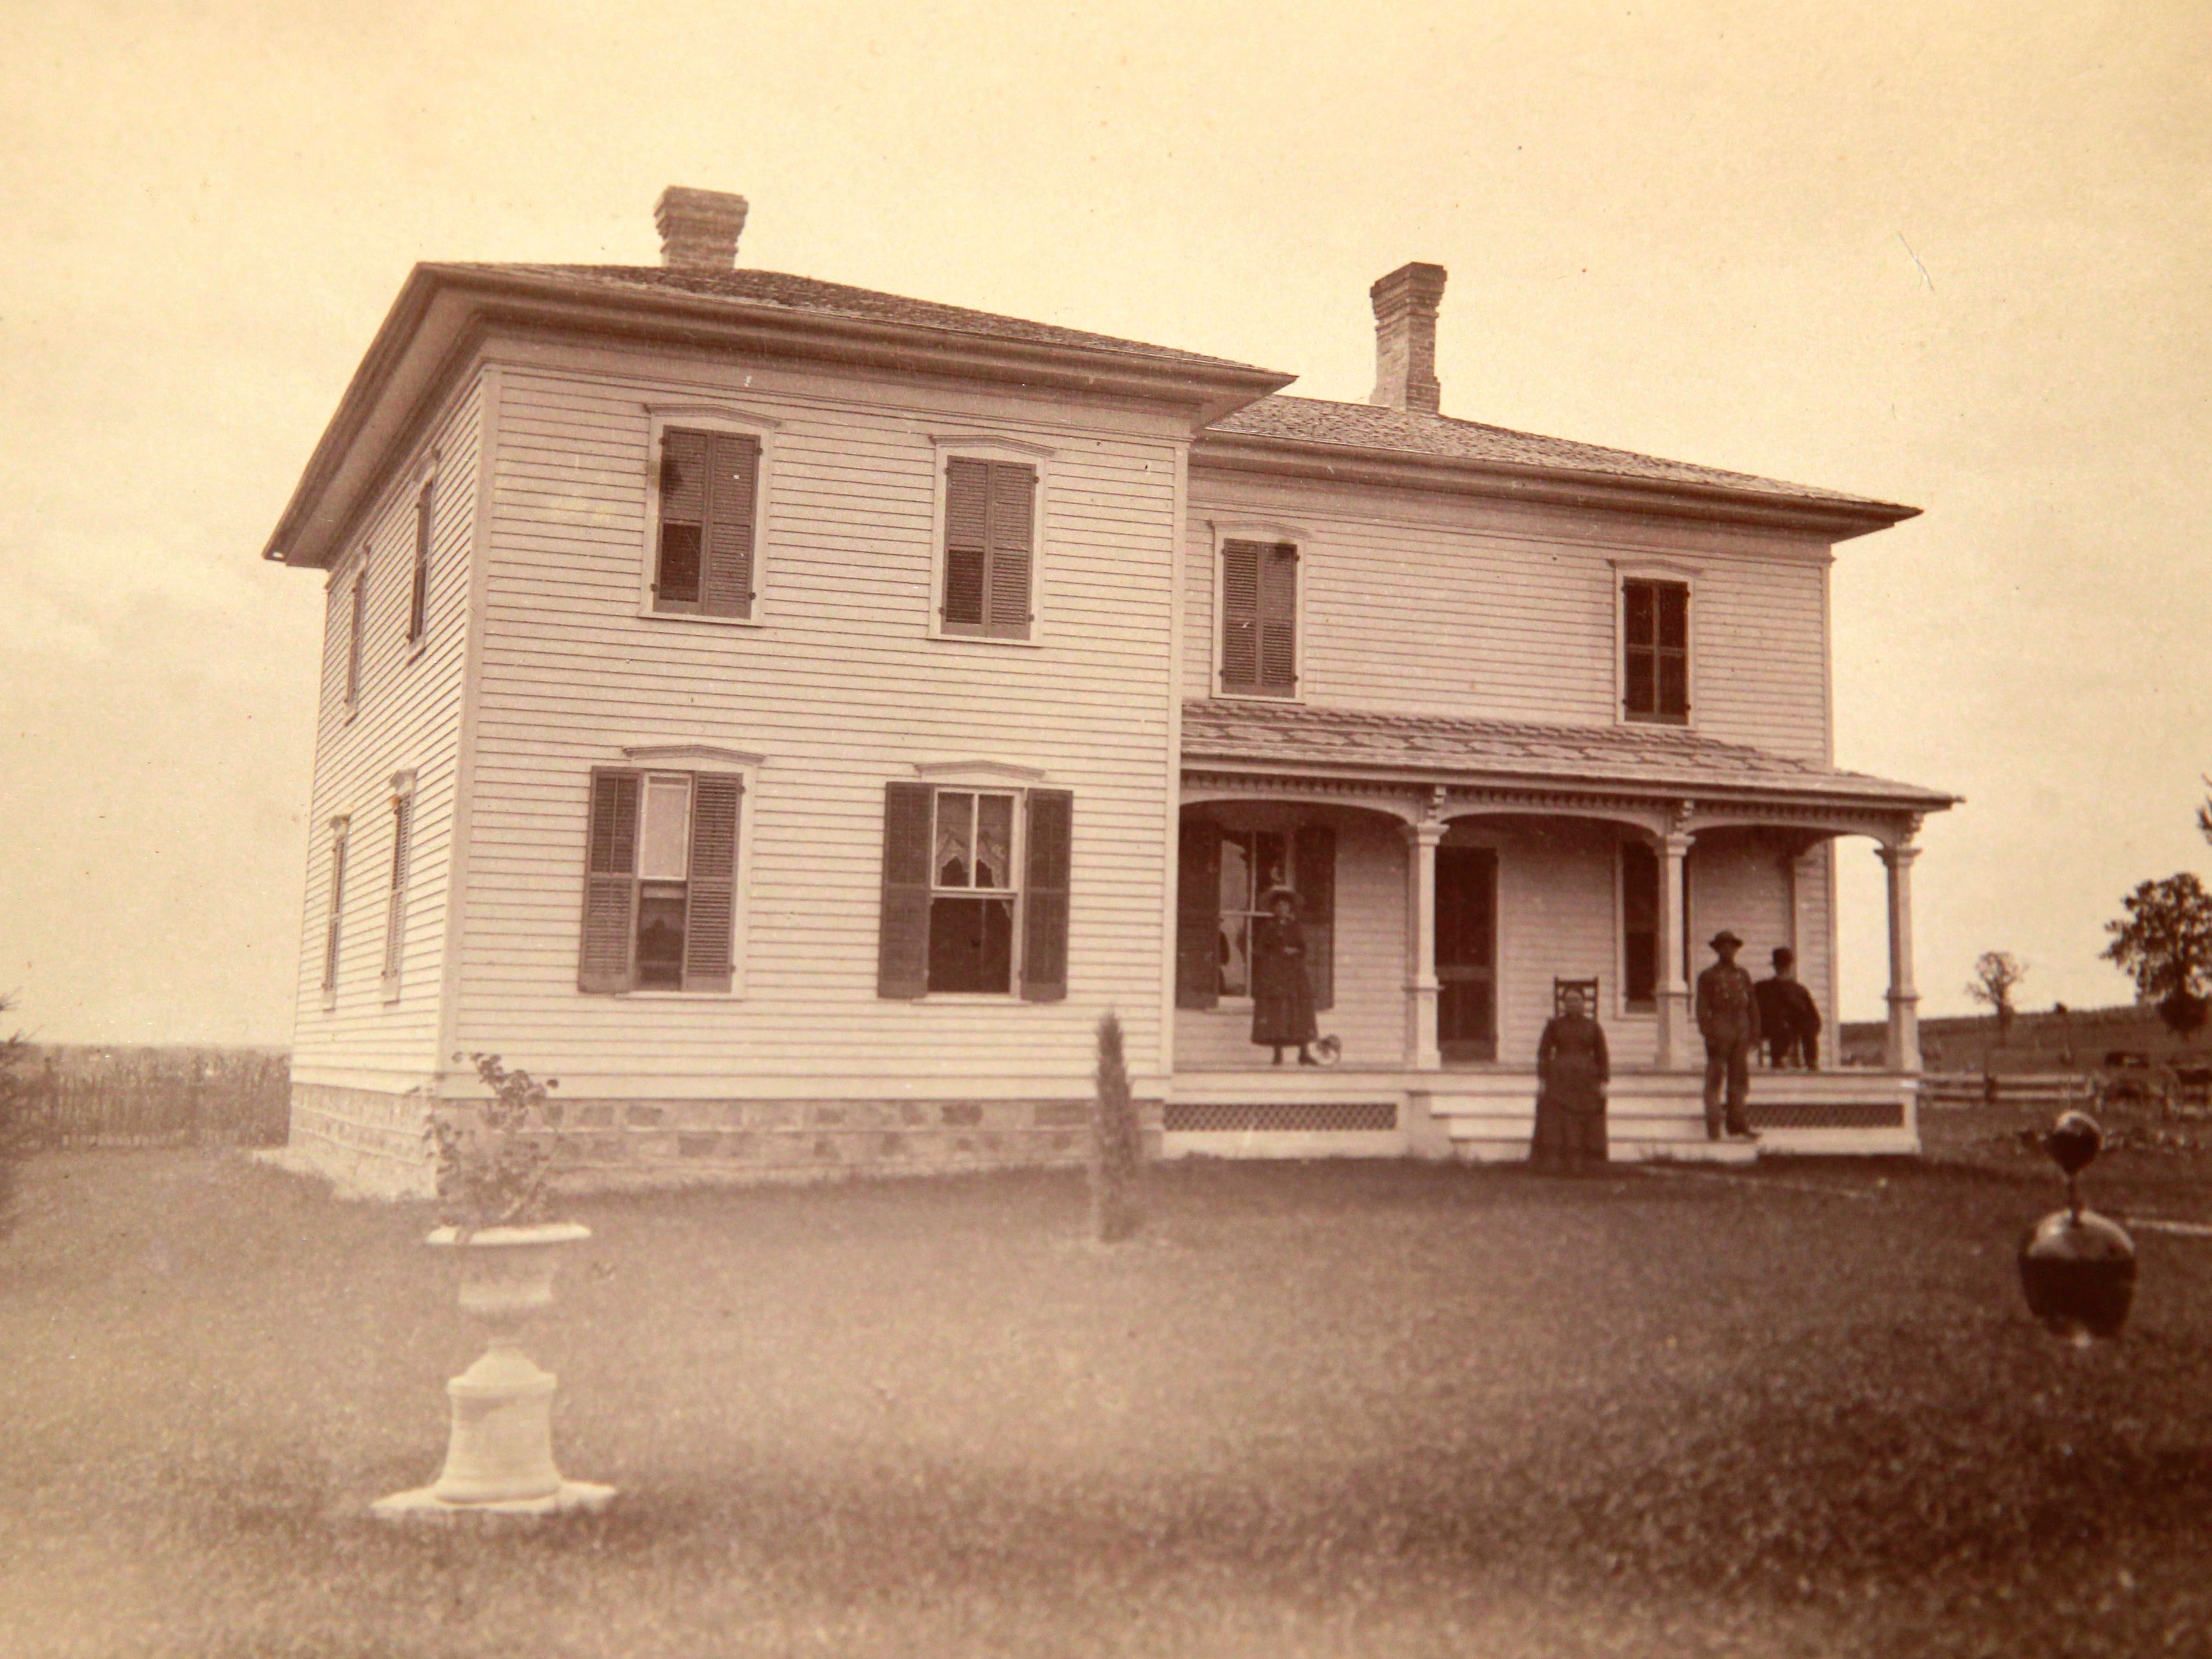 Betty and Lynn Ademan's home looked like this when it was built in 1881.